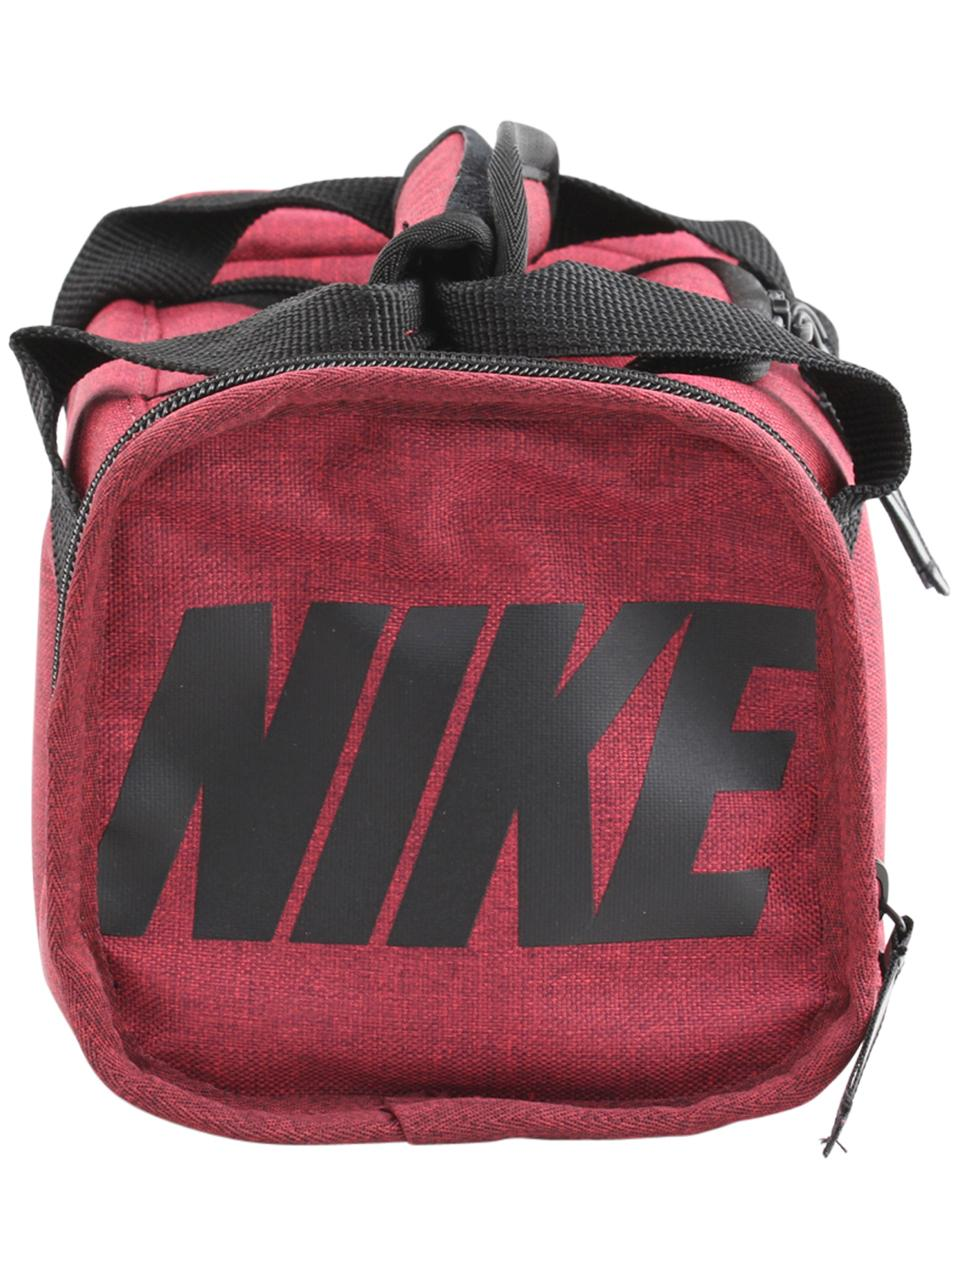 Nike-Deluxe-Insulated-Tote-Lunch-Bag thumbnail 33